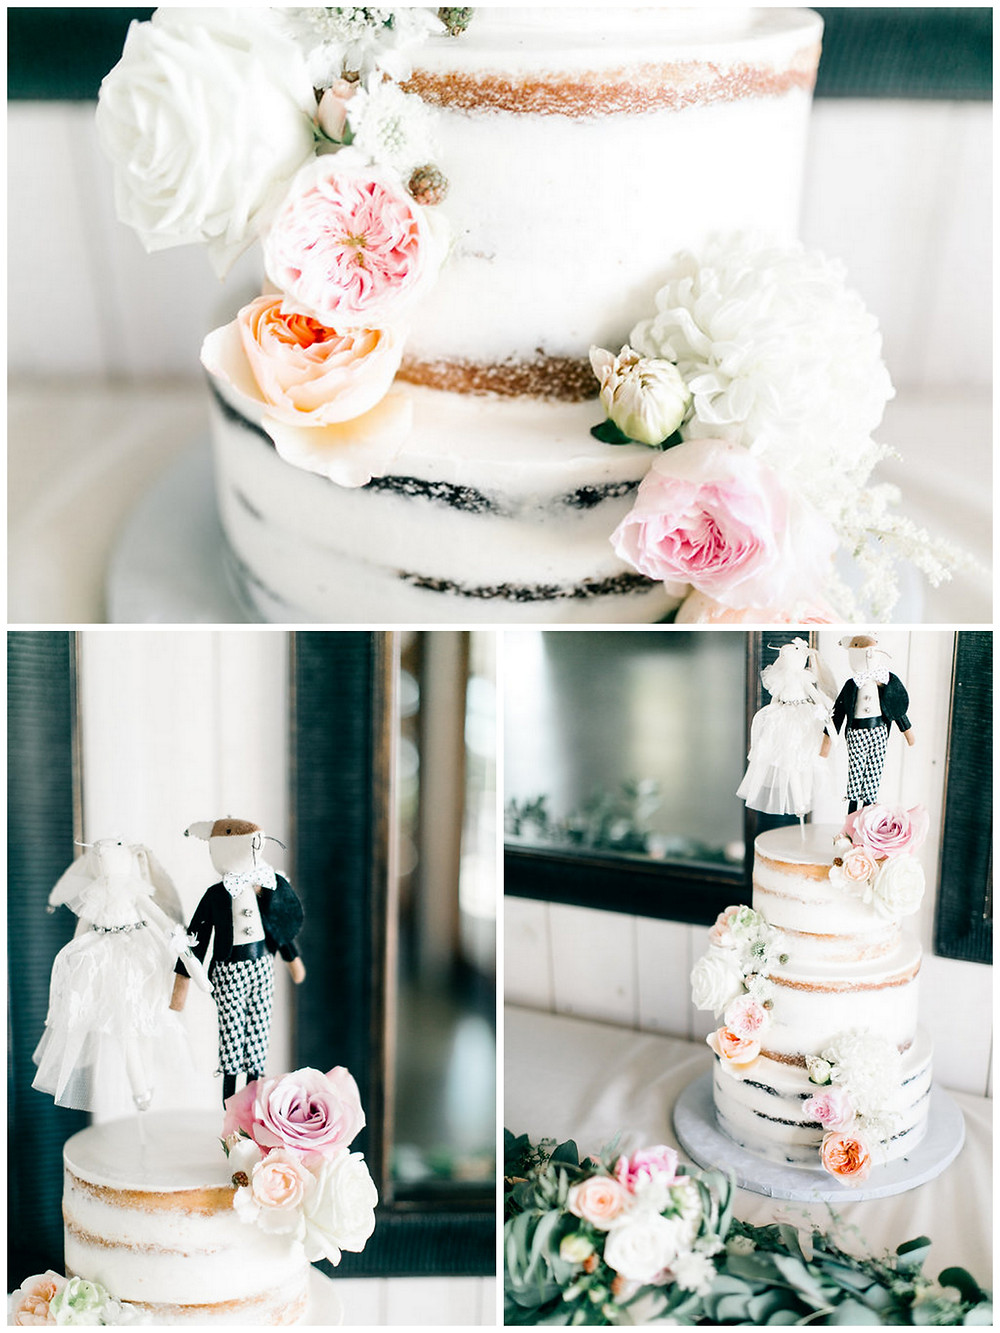 Cake Flowers by Visual Impact Design | Vienna Glenn Photography